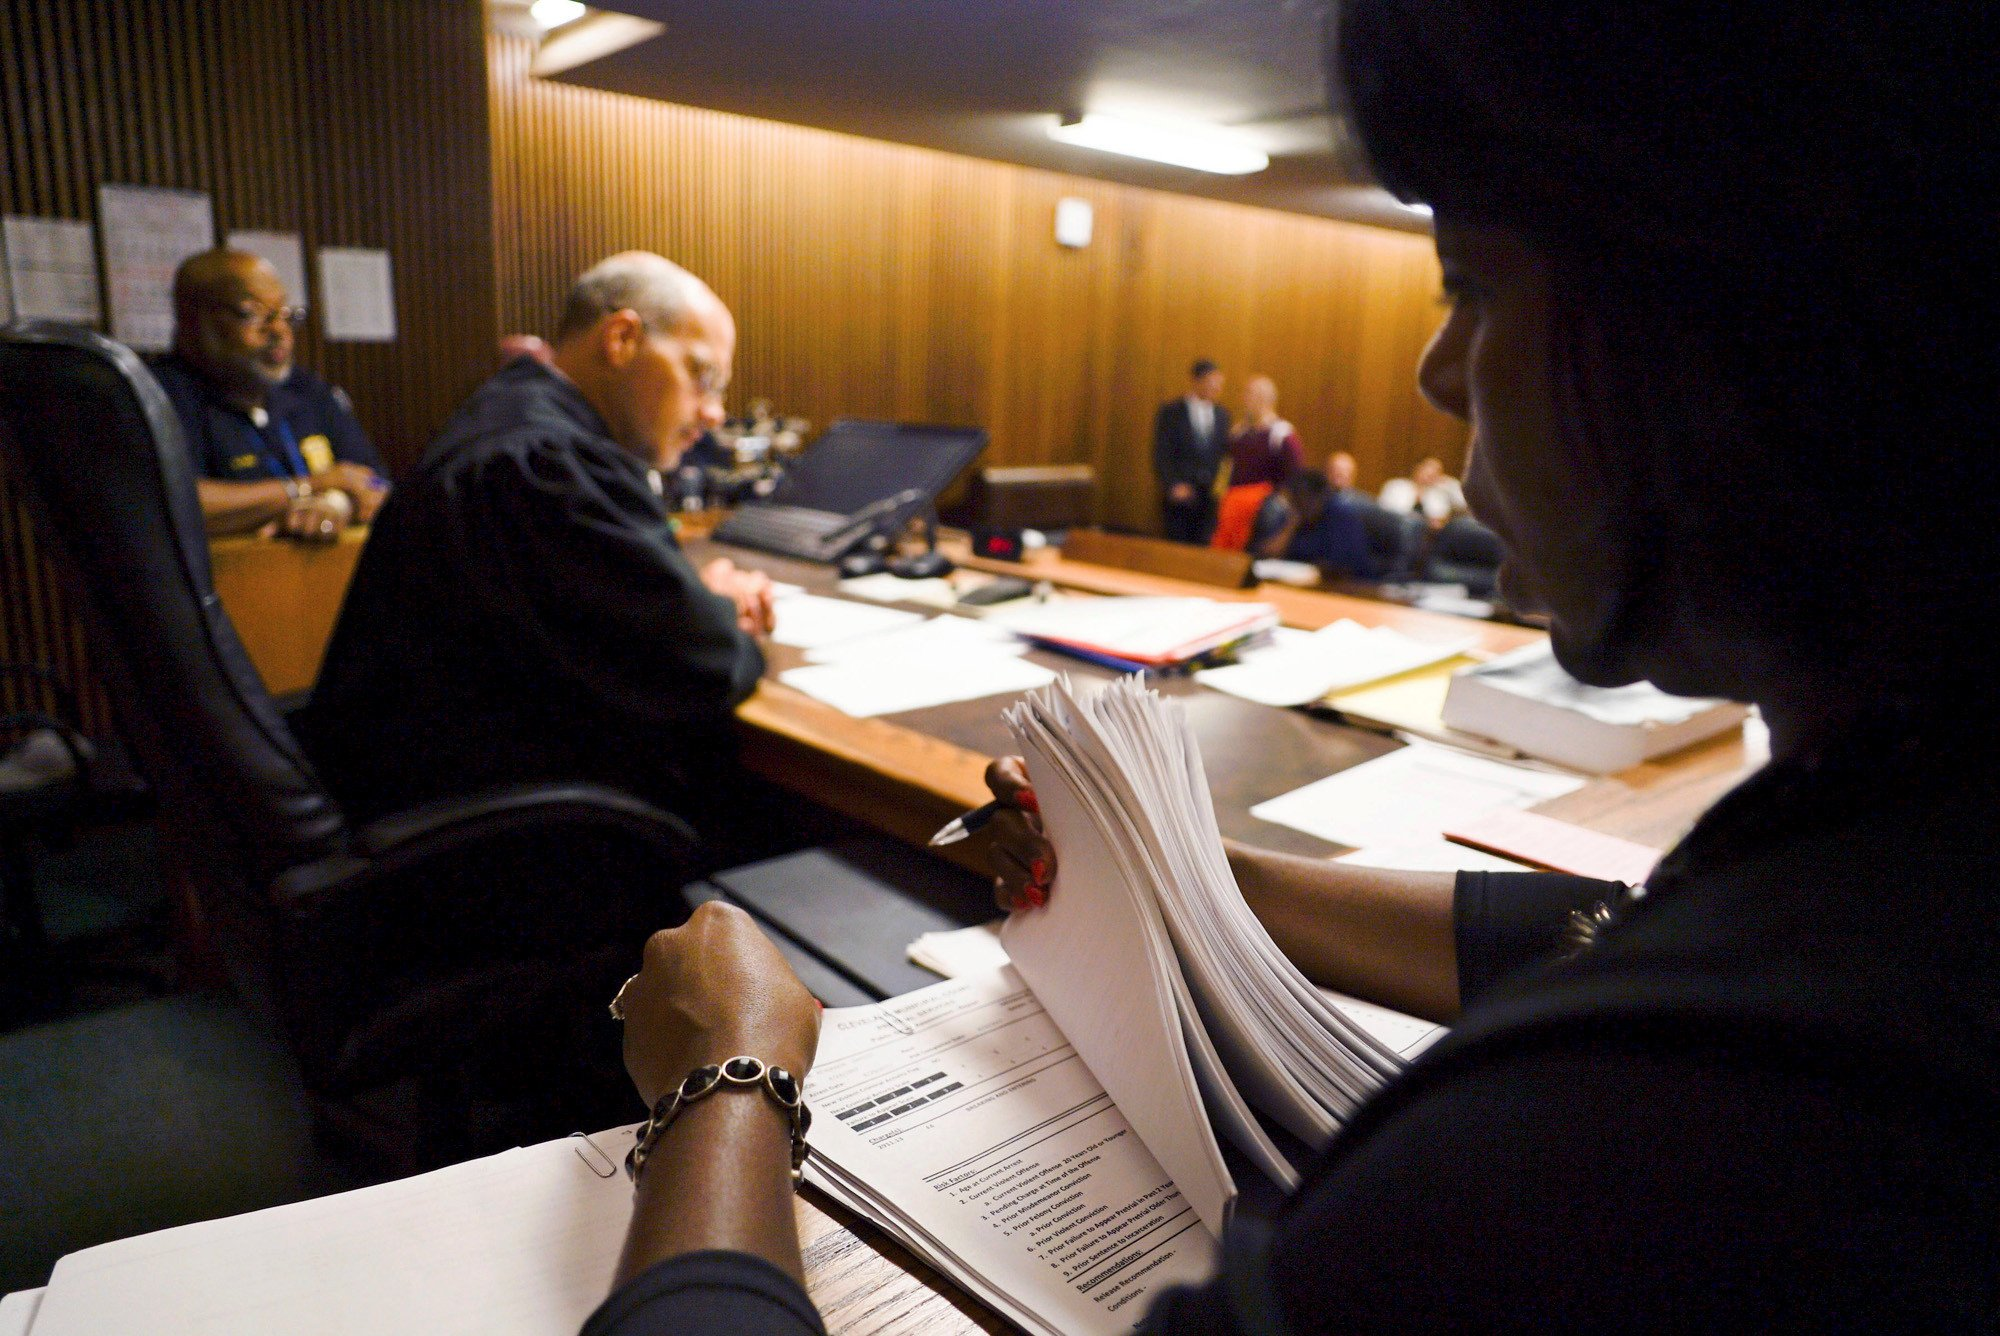 Artificial intelligence is coming for both judges and defendants